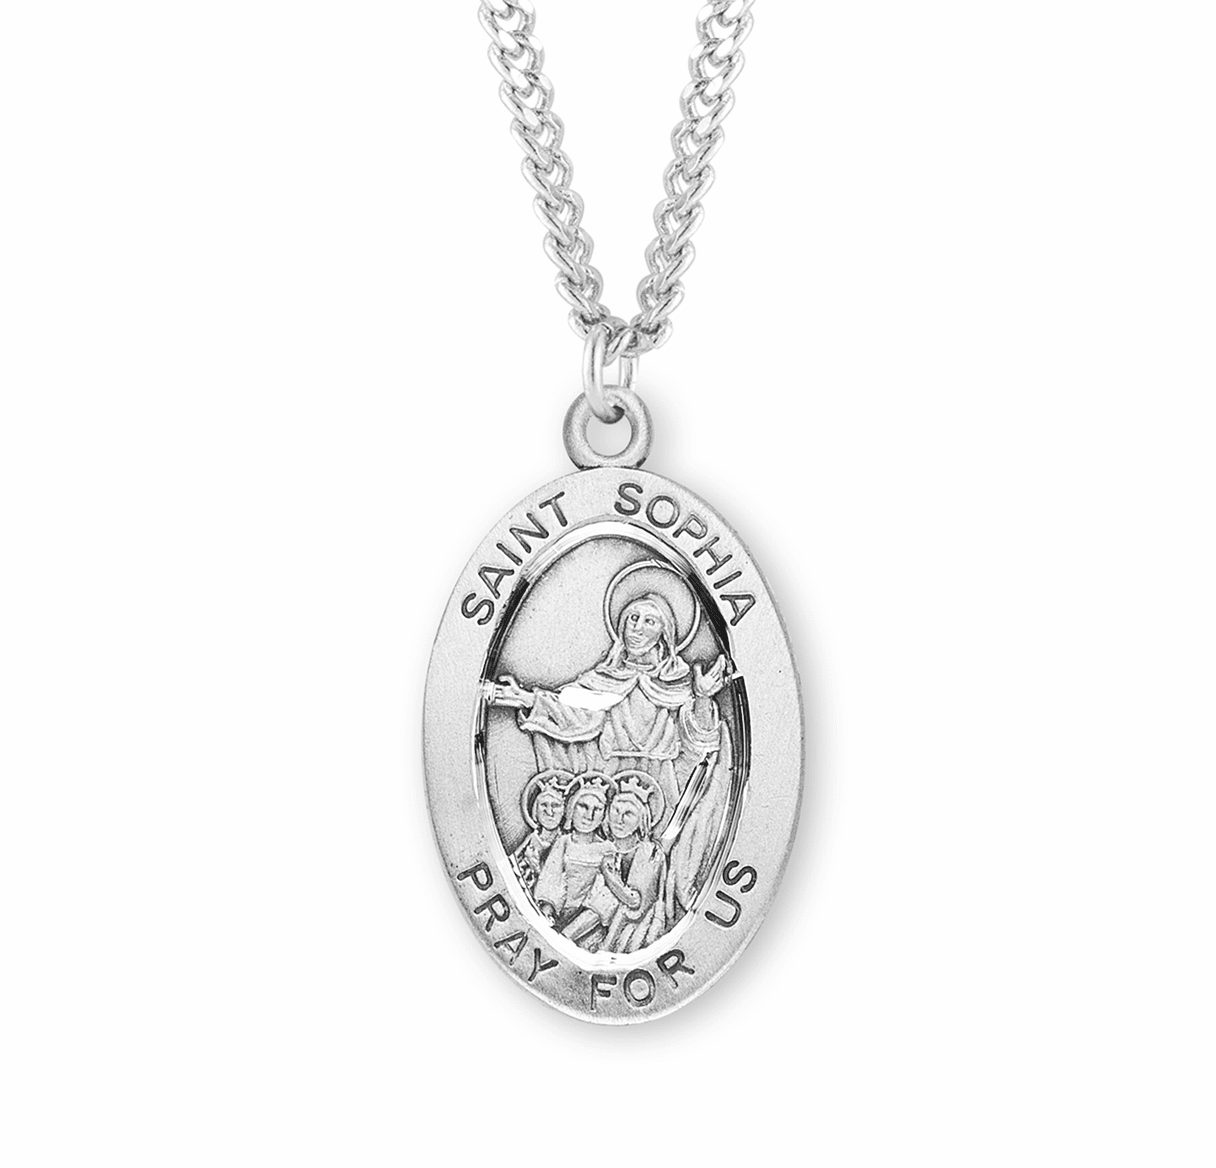 St Sophia Large Oval Sterling Silver Patron Saint Medal Necklace w/Chain by HMH Religious